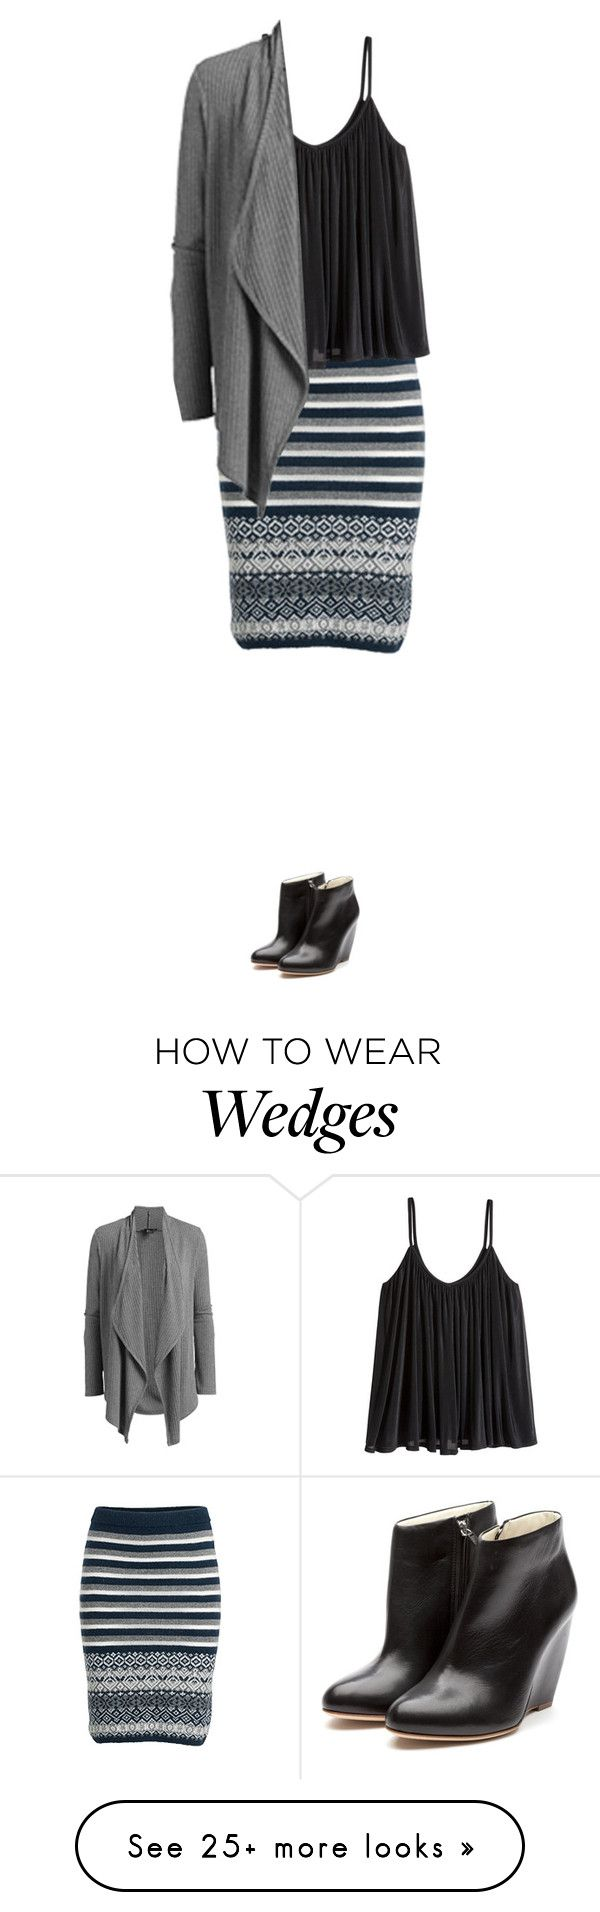 """""""201512162"""" by mpociute on Polyvore featuring H&M and Rupert Sanderson"""